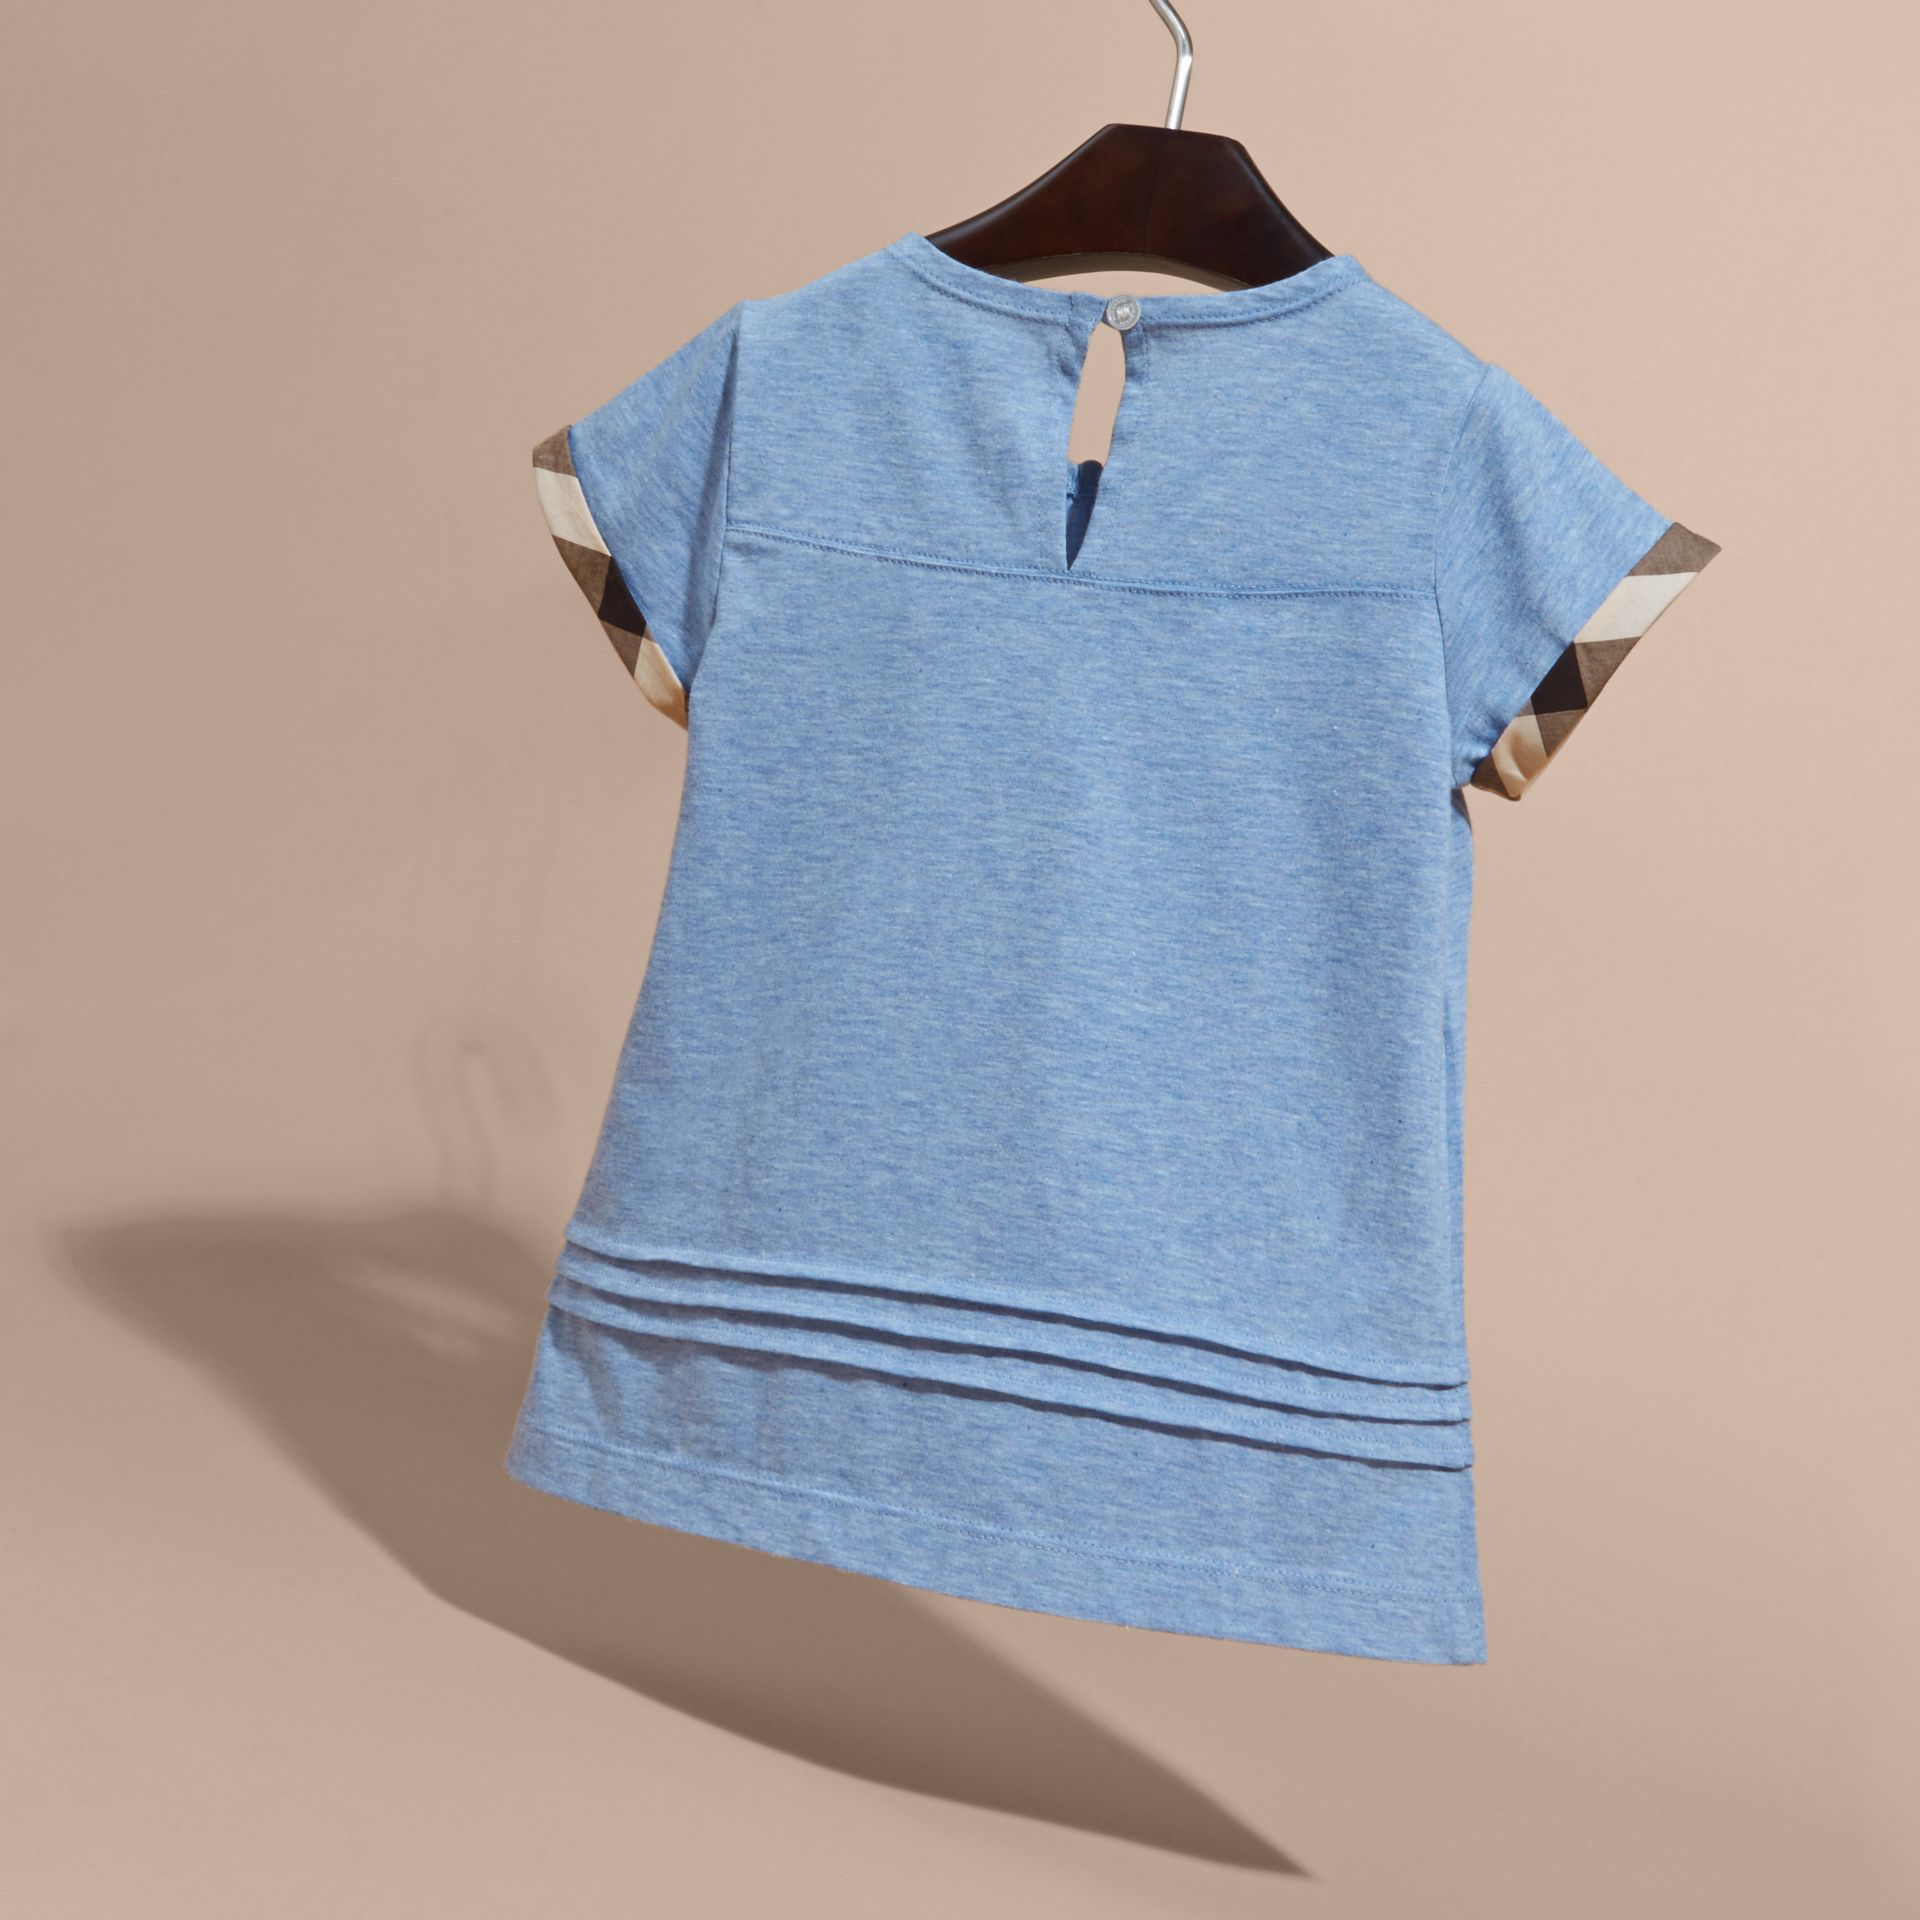 Pleat and Check Detail Cotton T-shirt in Light Blue Melange | Burberry - gallery image 4